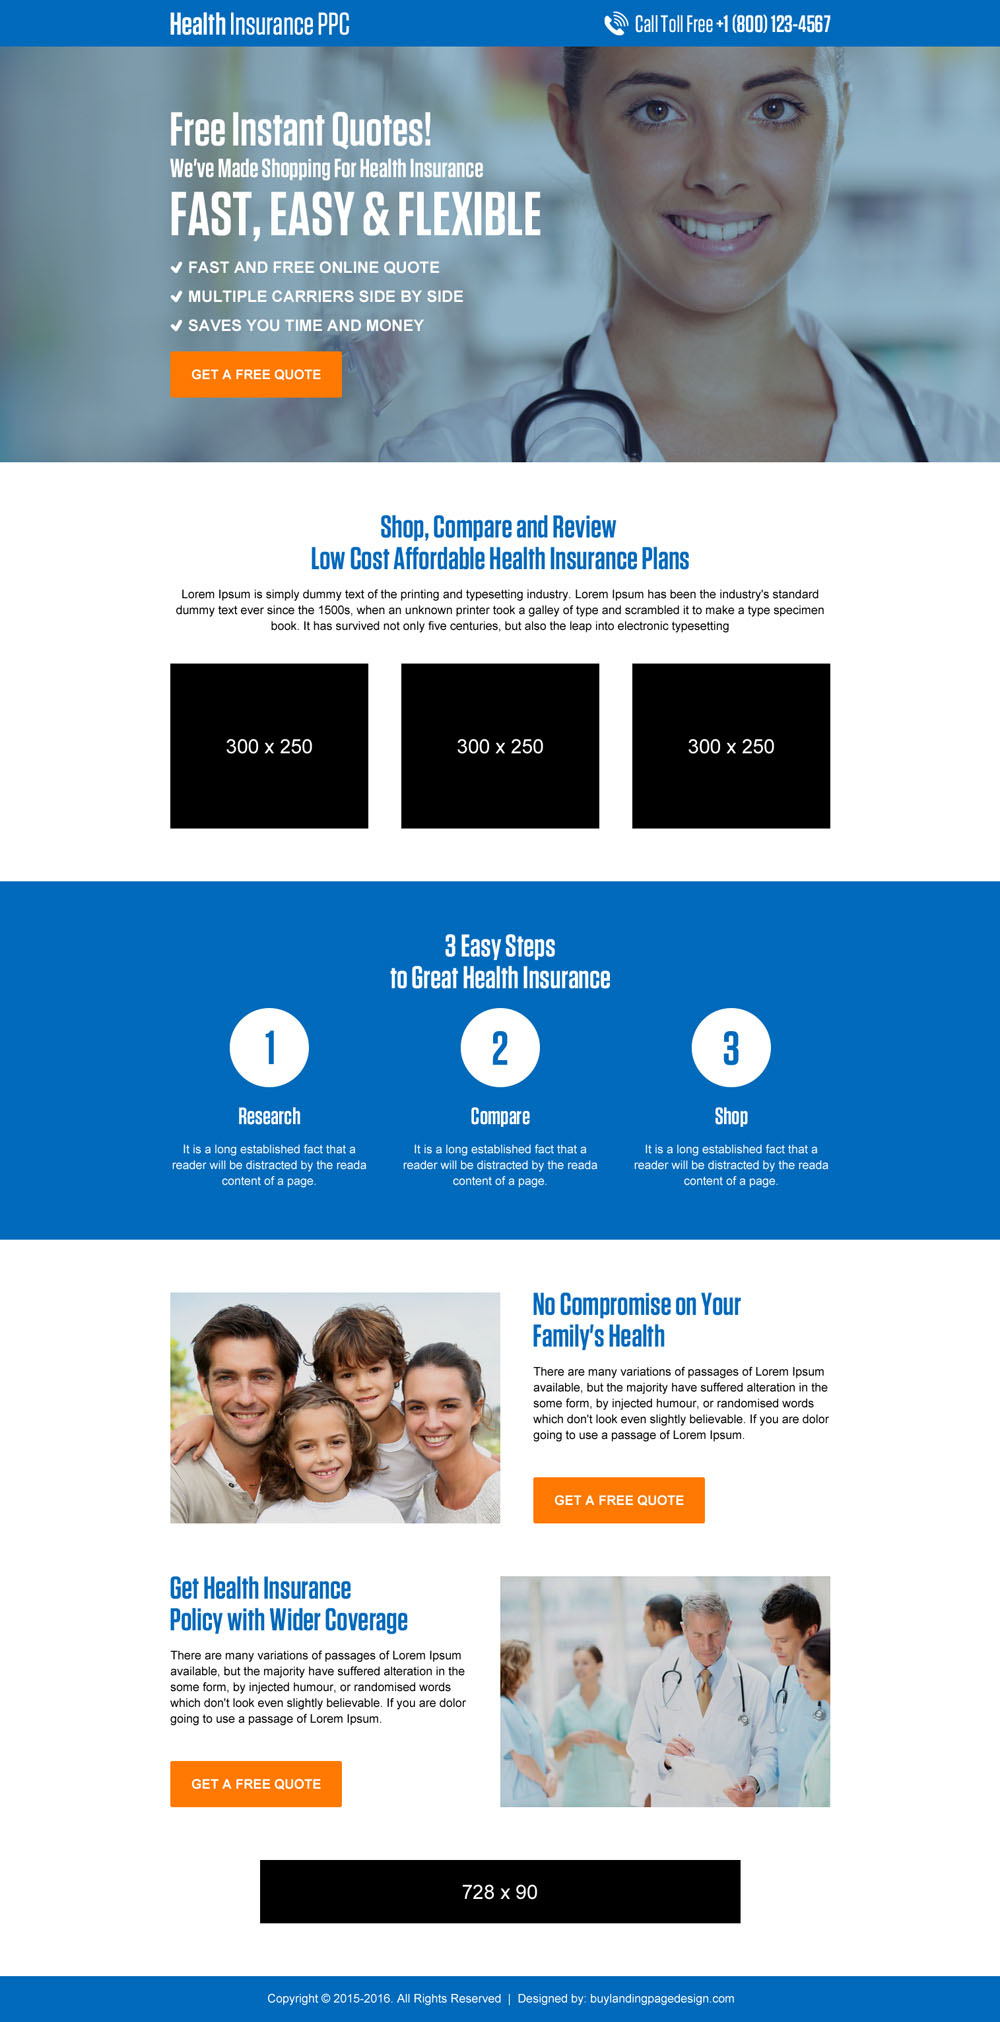 health-insurance-free-instant-quote-service-pay-per-click-converting-landing-page-003